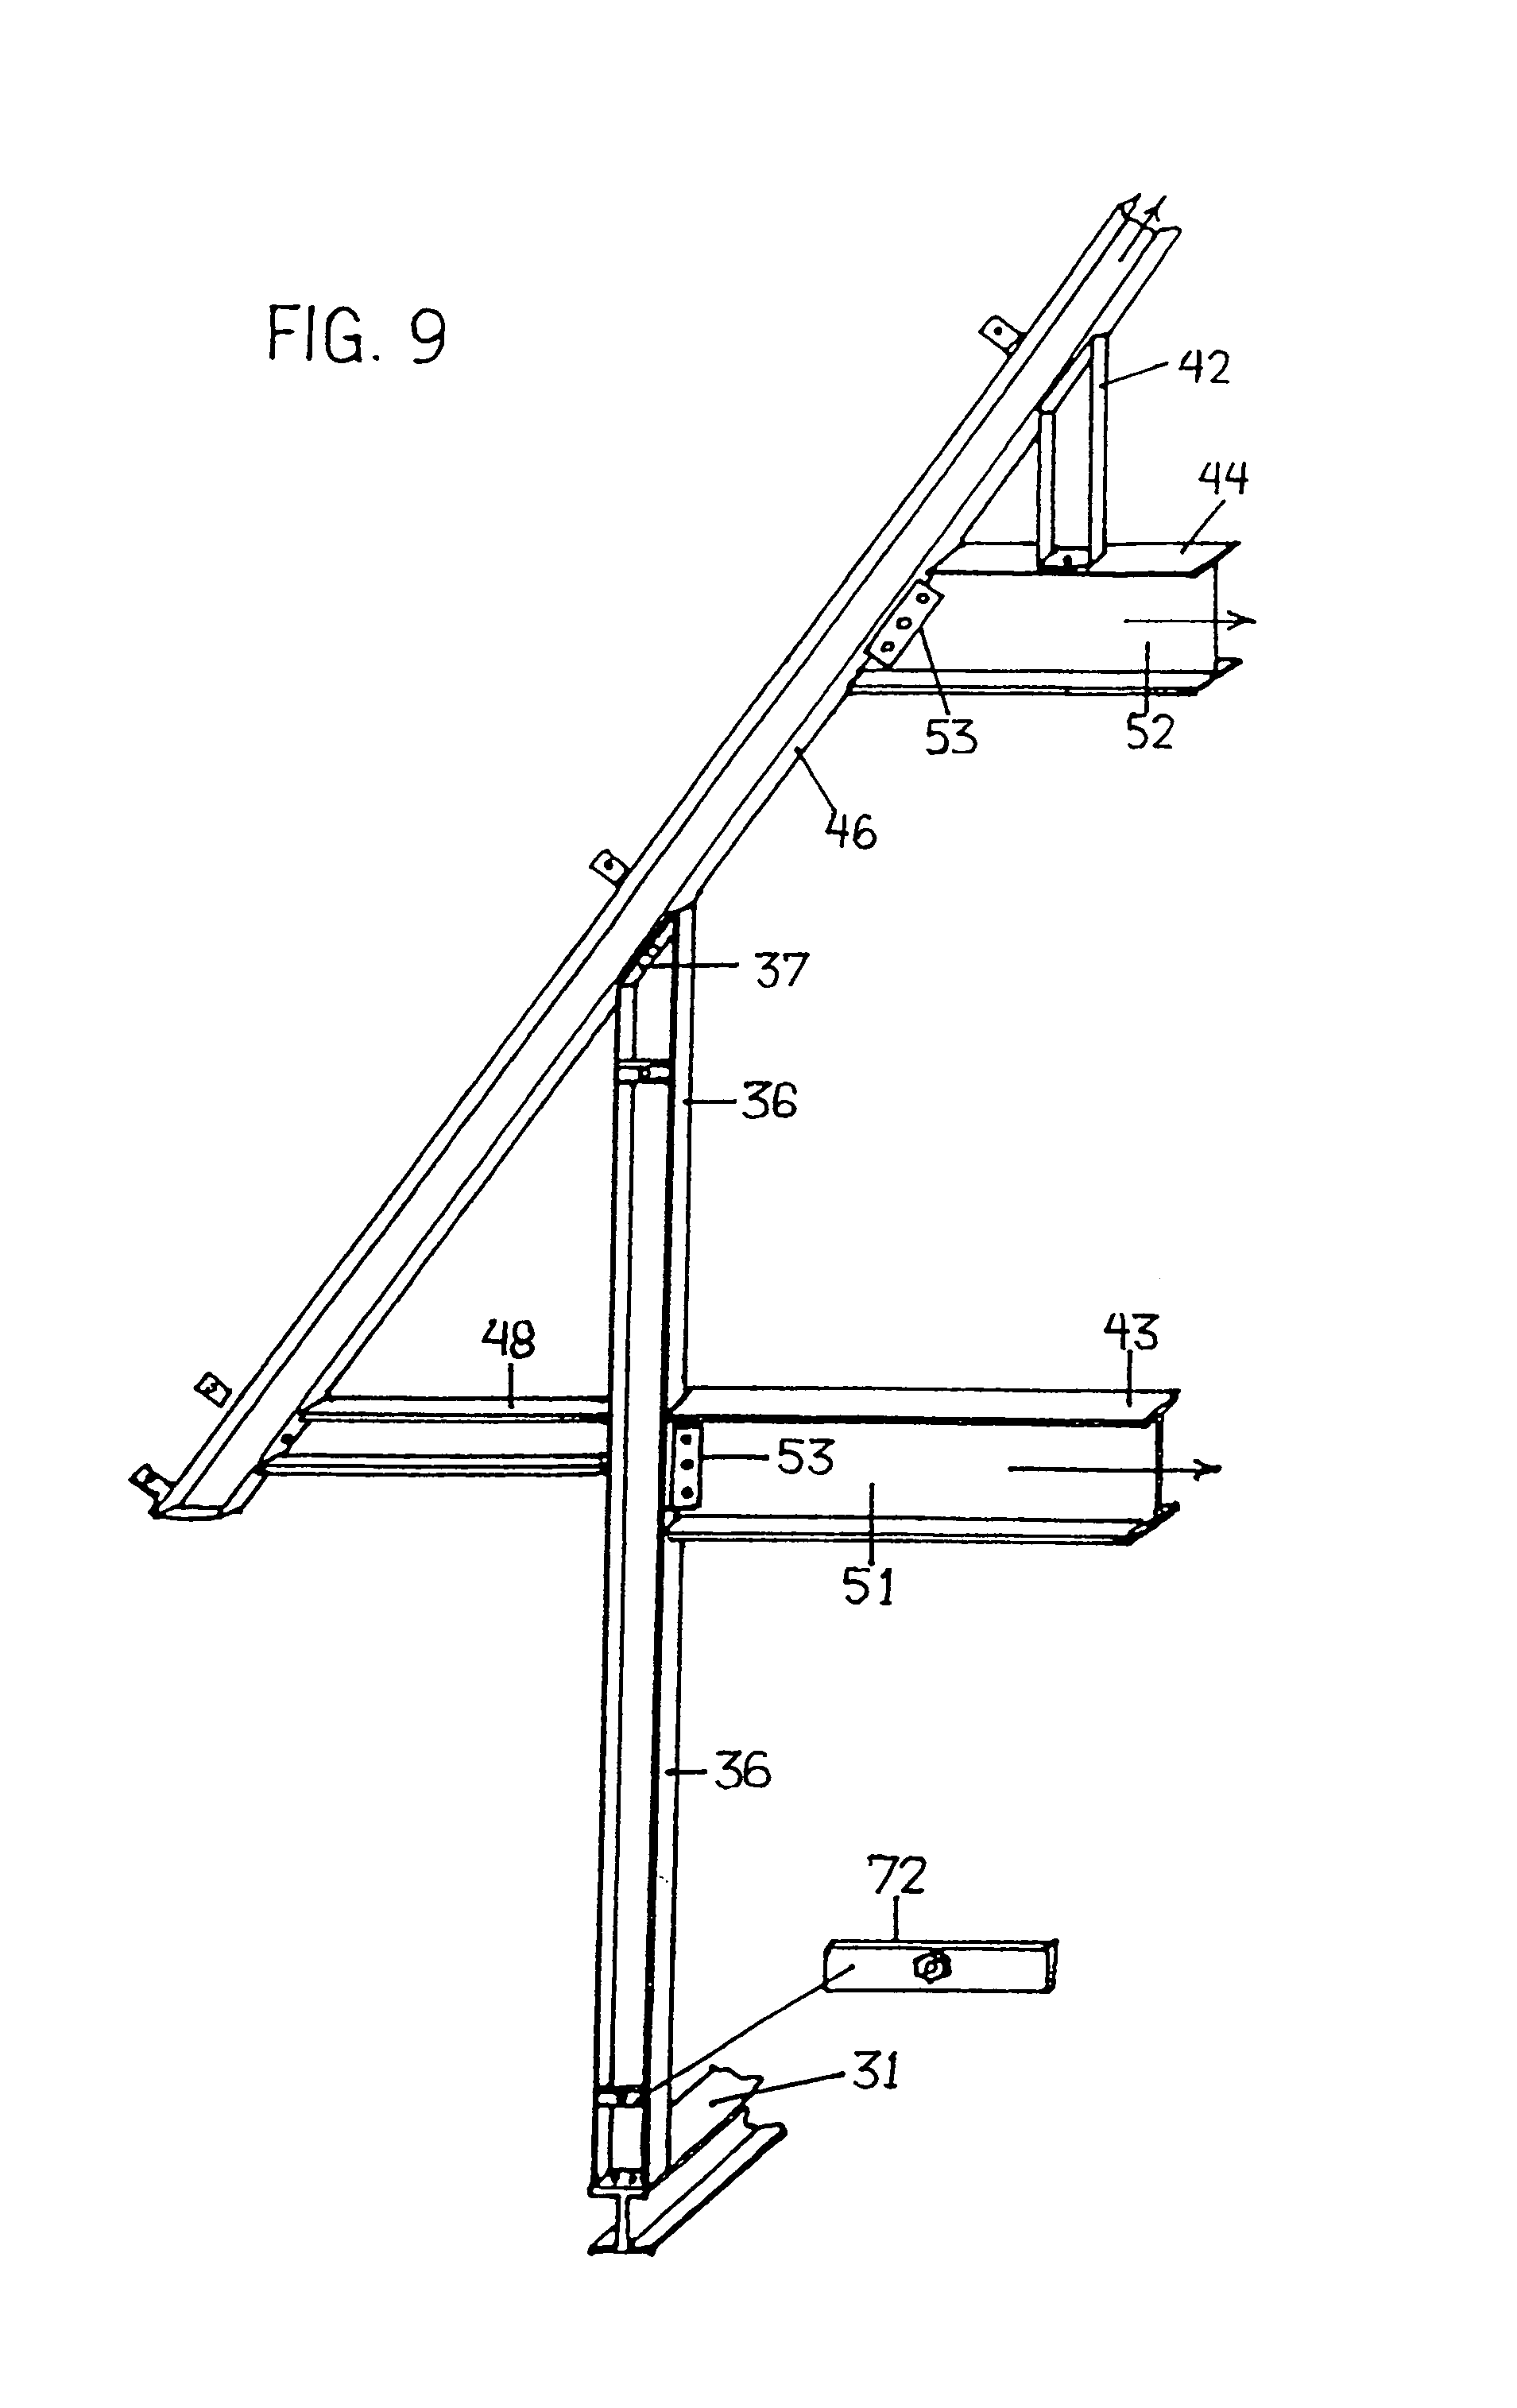 Steel Framed Houses Patent Us7665251 Structural Steel Framed Houses With Gable End